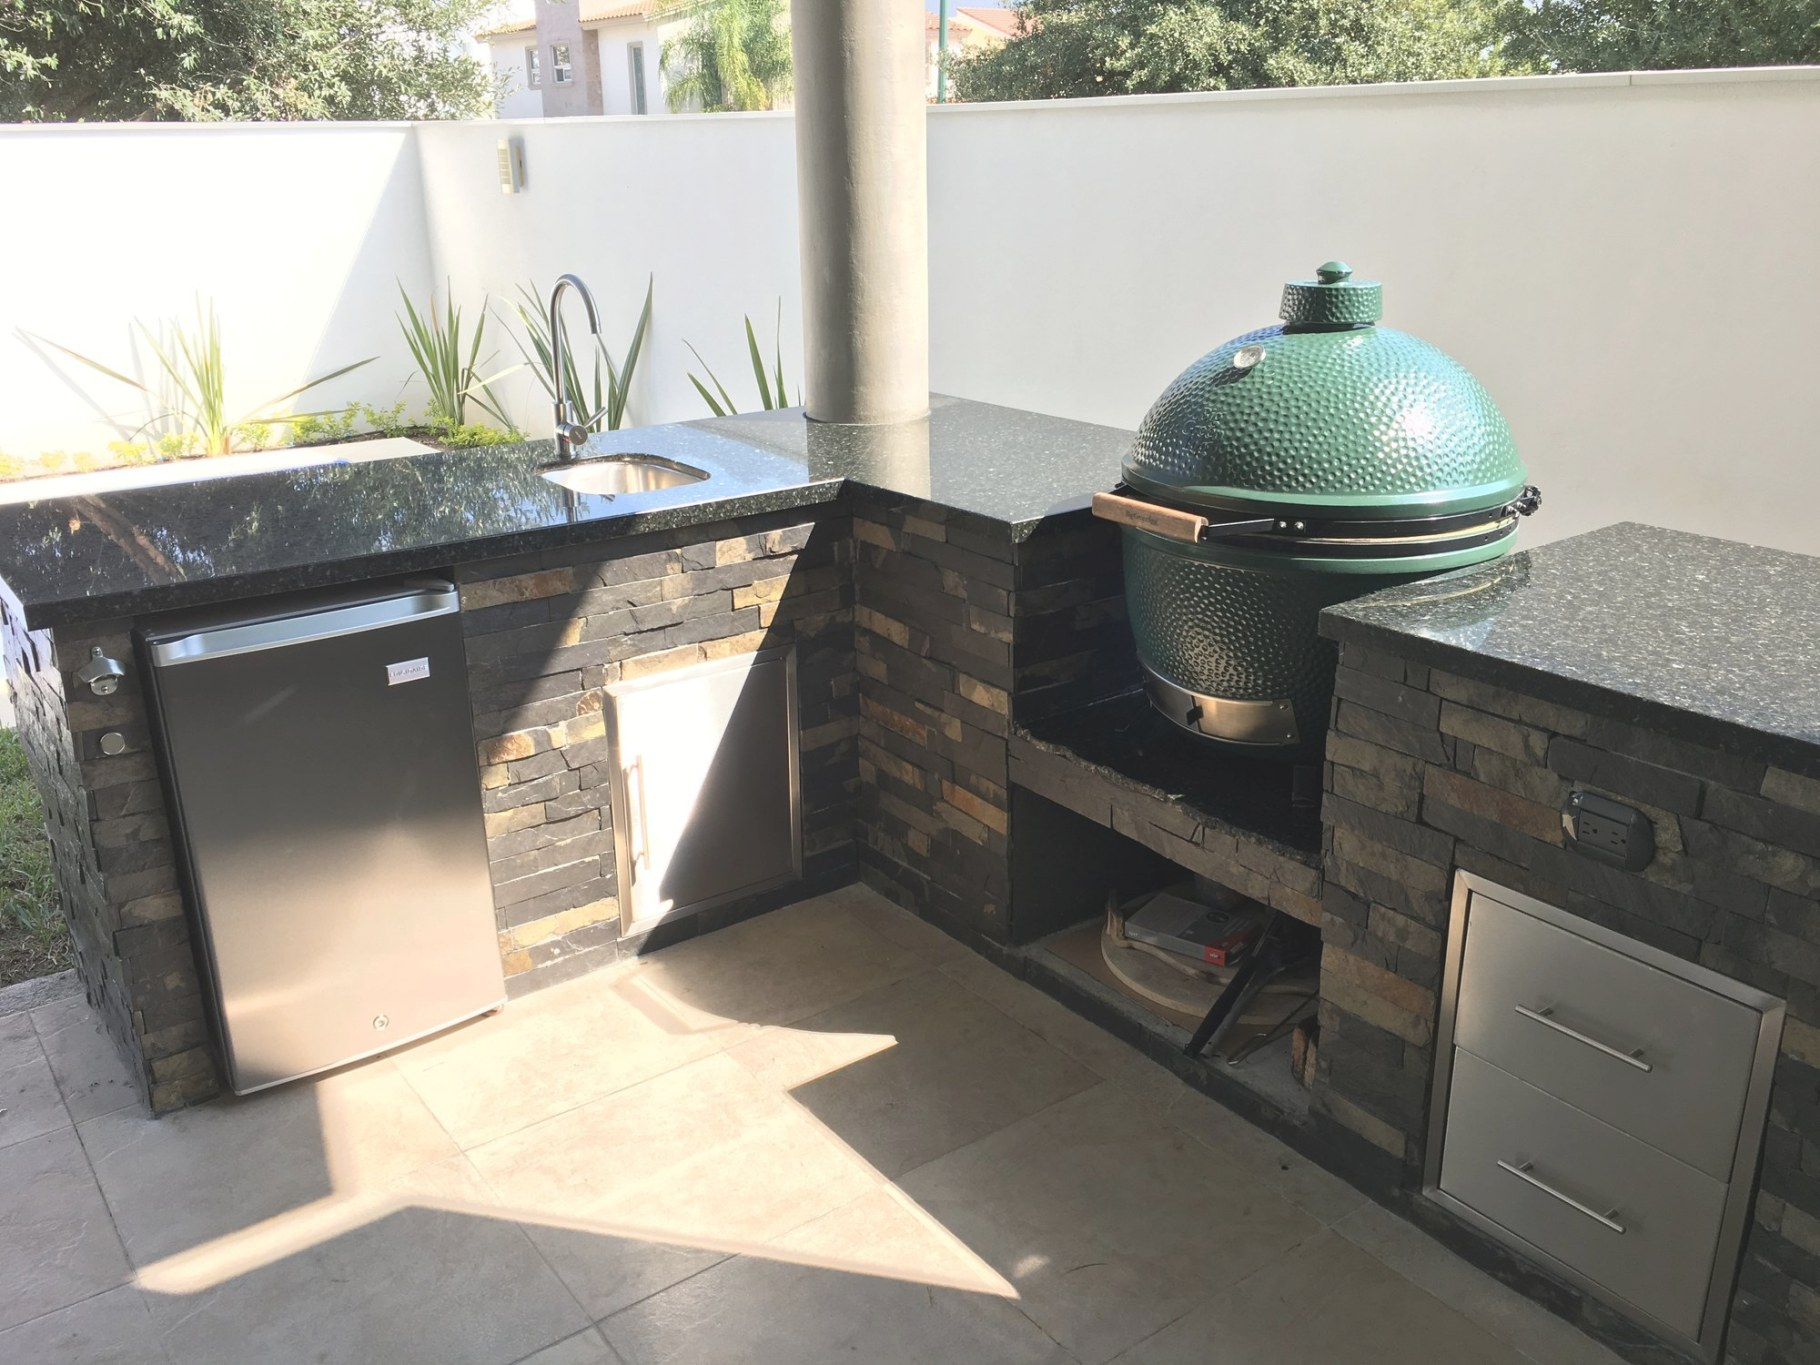 Outdoor Kitchen Help — Big Green Egg - Egghead Forum - The pertaining to Big Green Egg Outdoor Kitchen